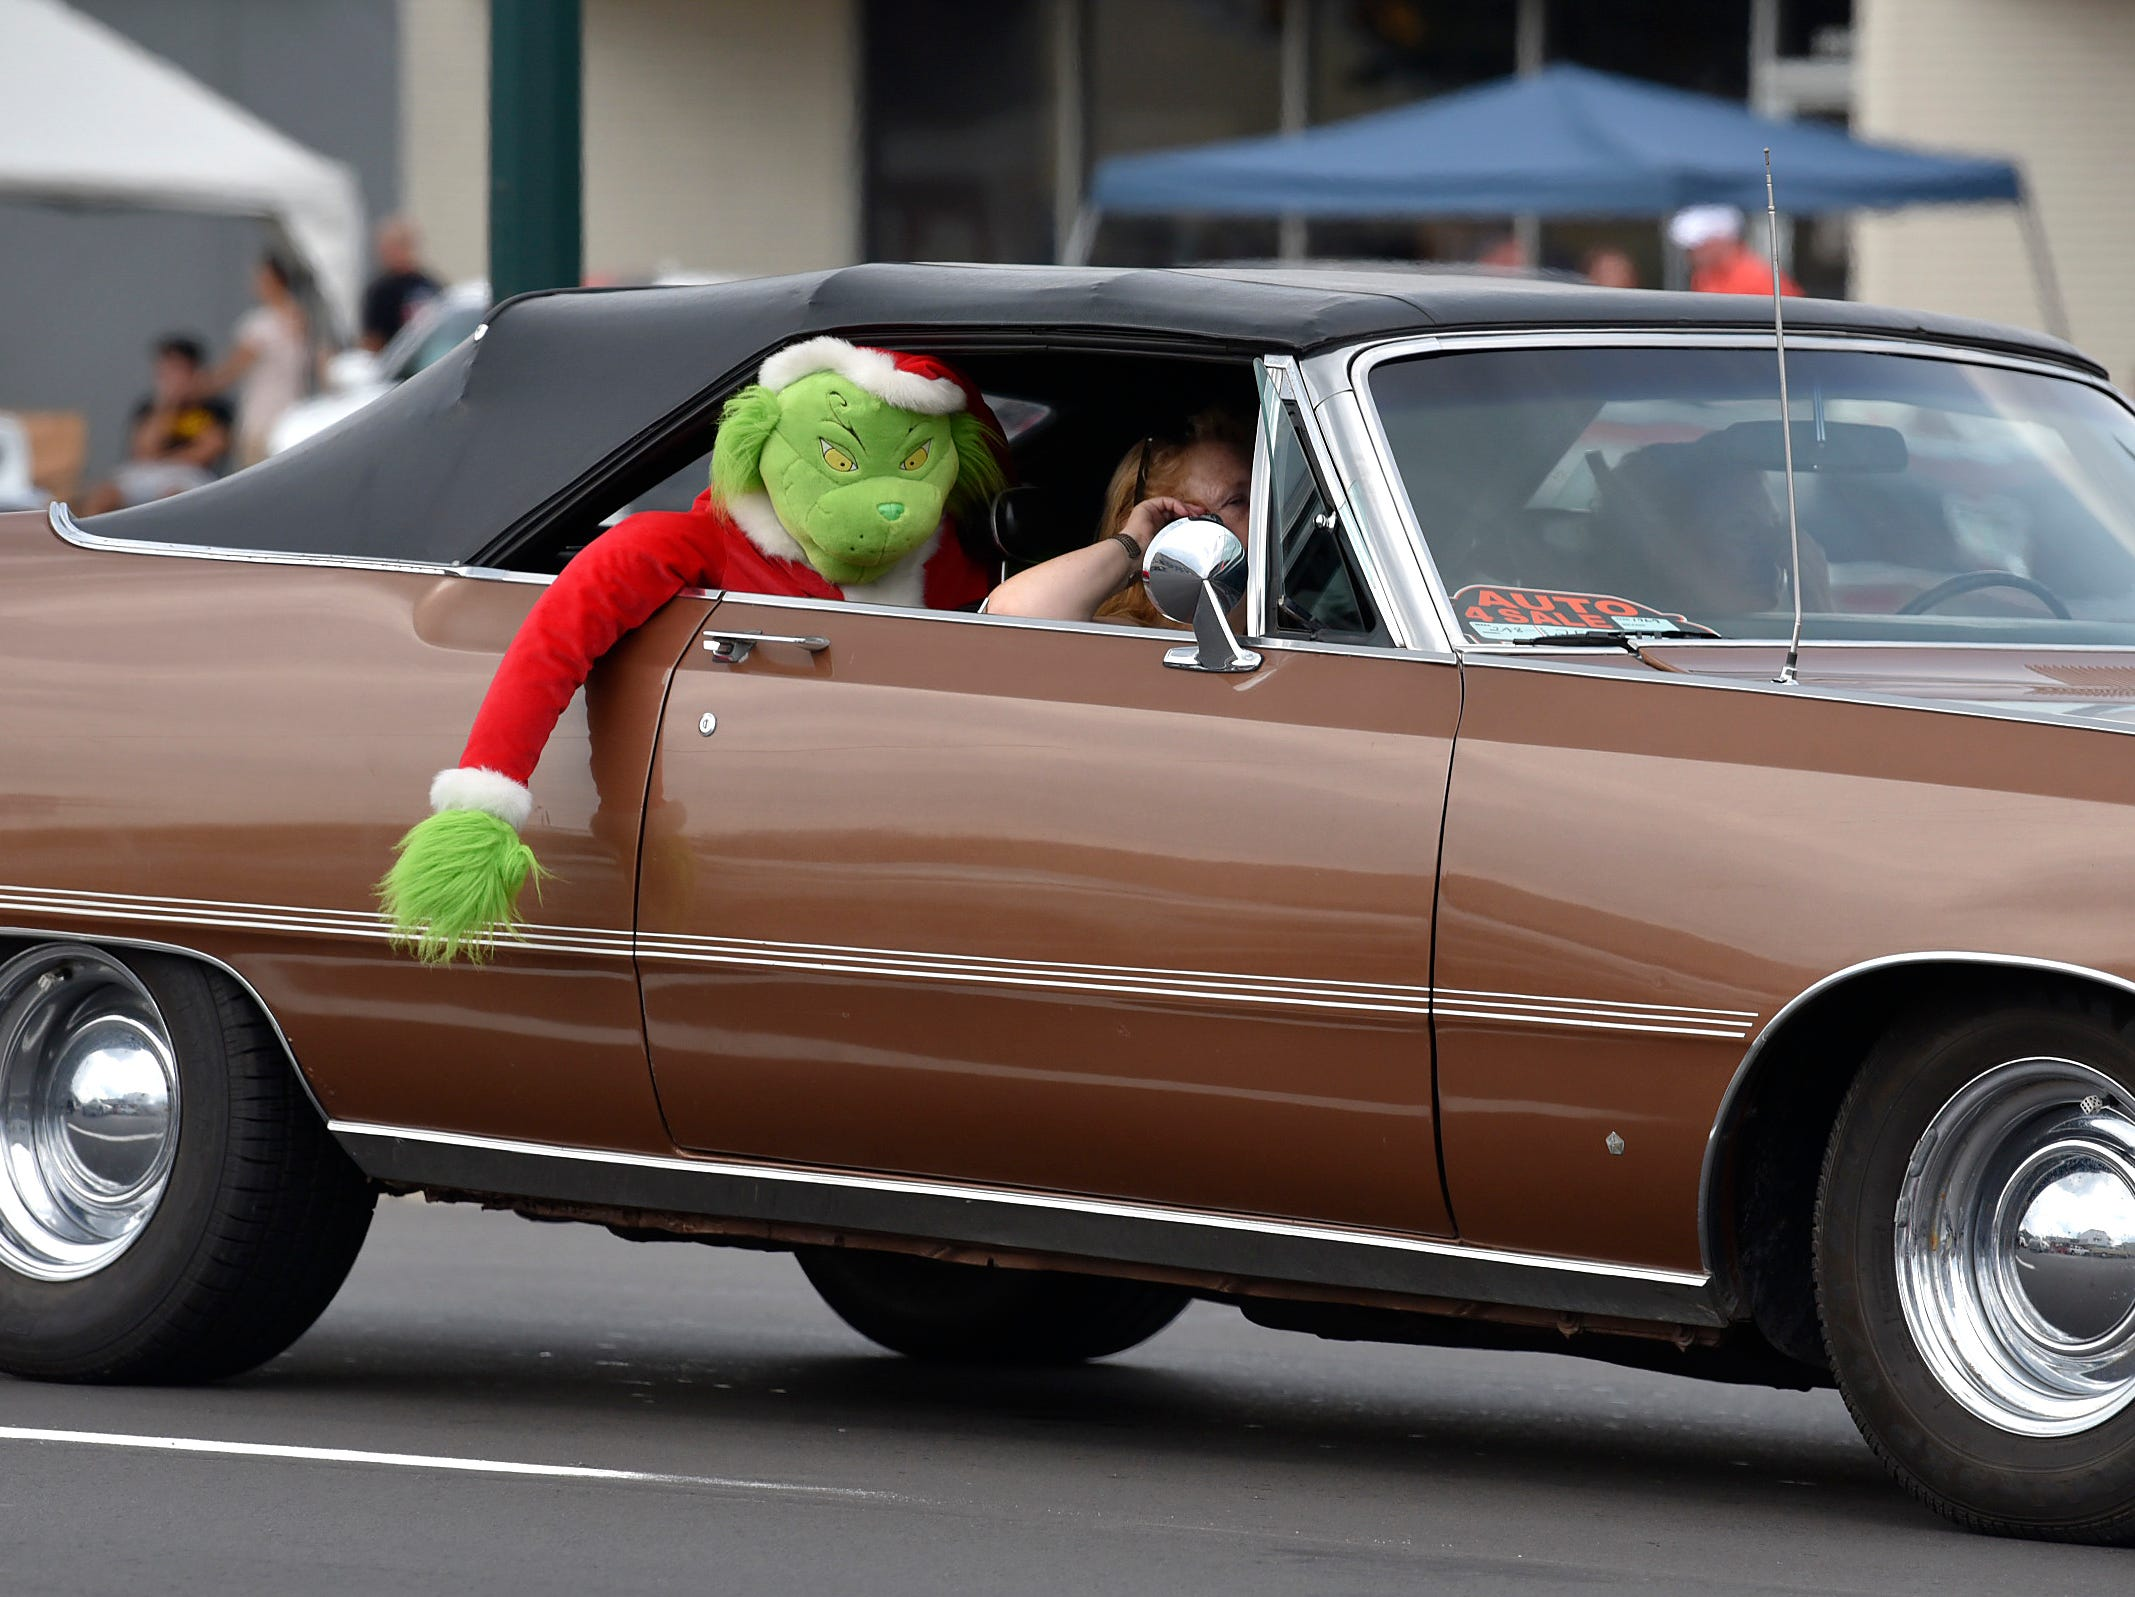 A Grinch plush toy  rides in the back seat of a 1969 Chysler 300.